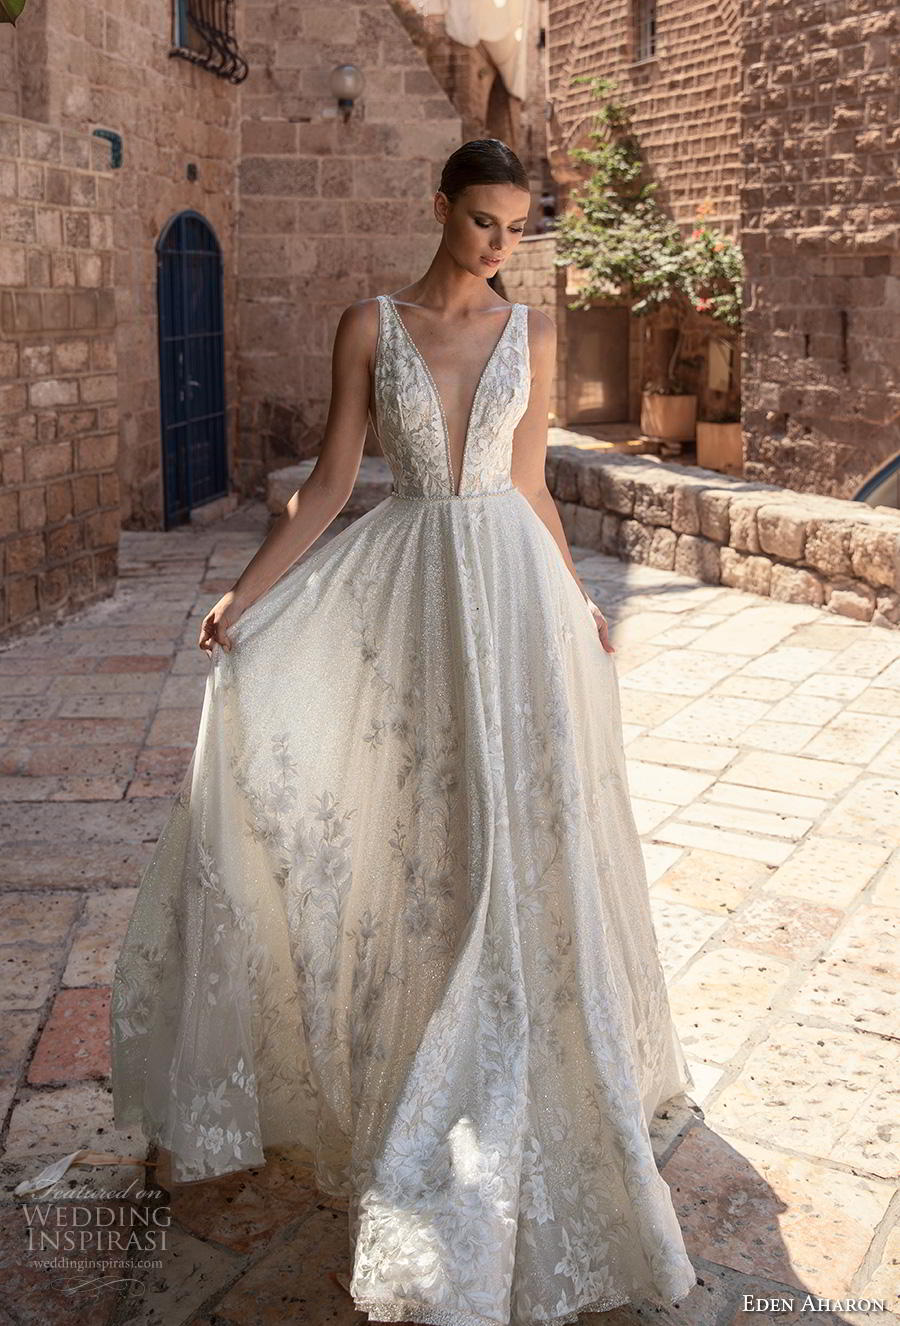 eden aharon 2019 bridal sleeveless deep plunging v neck full embellishment romantic soft a  line wedding dress (4) mv